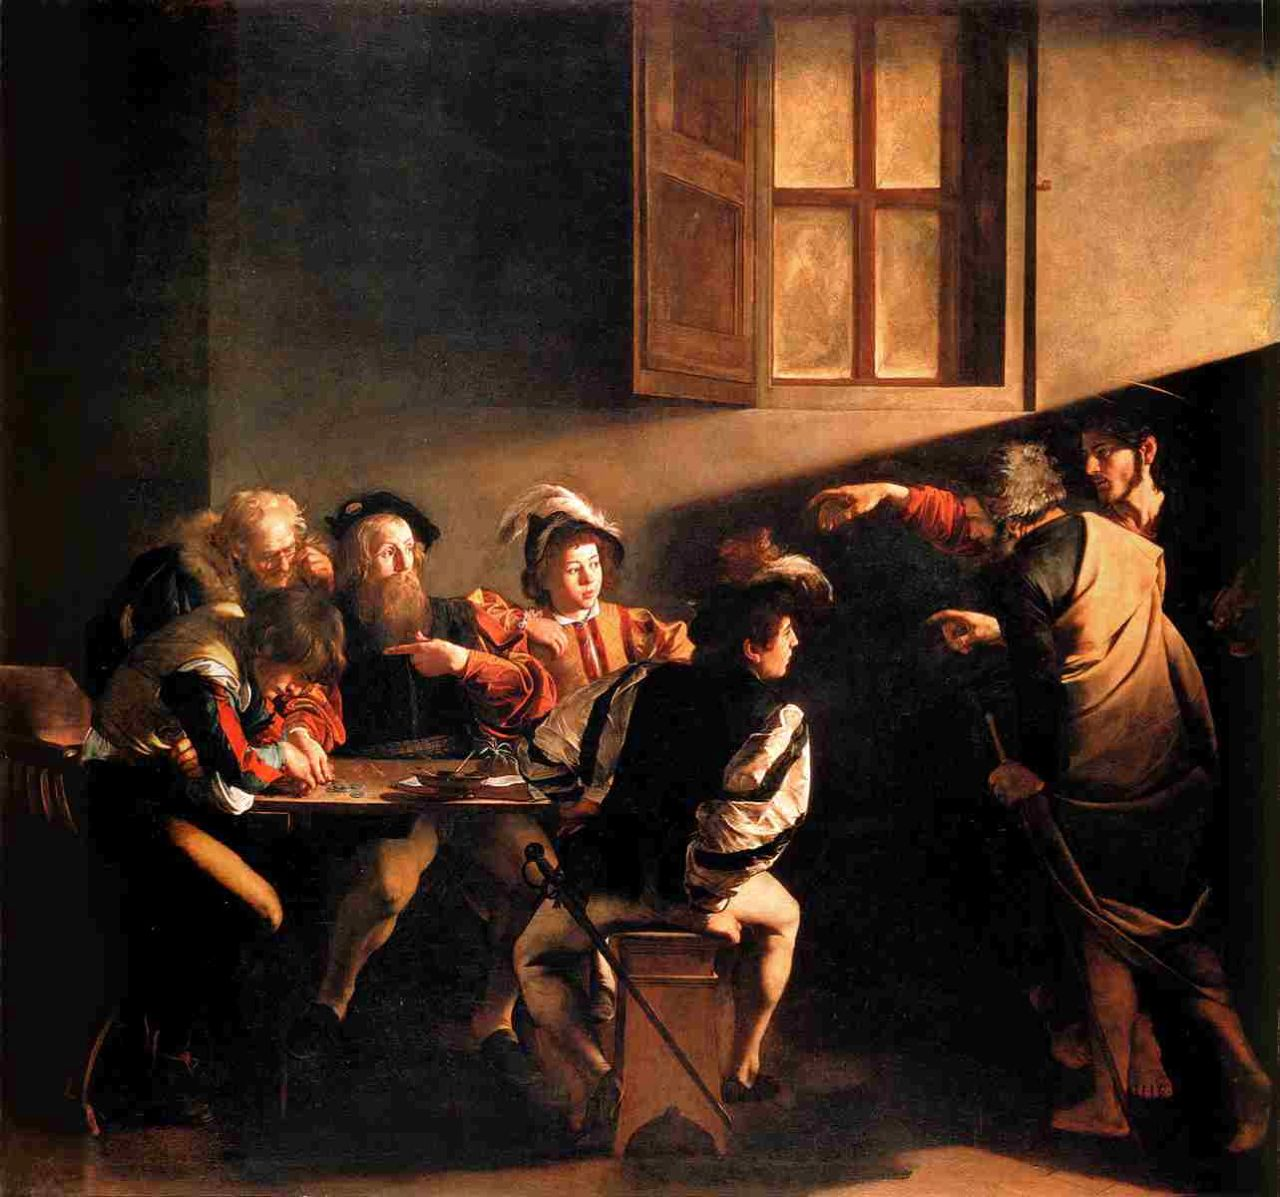 Caravaggio, The Calling of St. Matthew, 1599-1600, oil on canvas, Contarelli Chapel, San Luigi dei Francesi, Rome, Italy